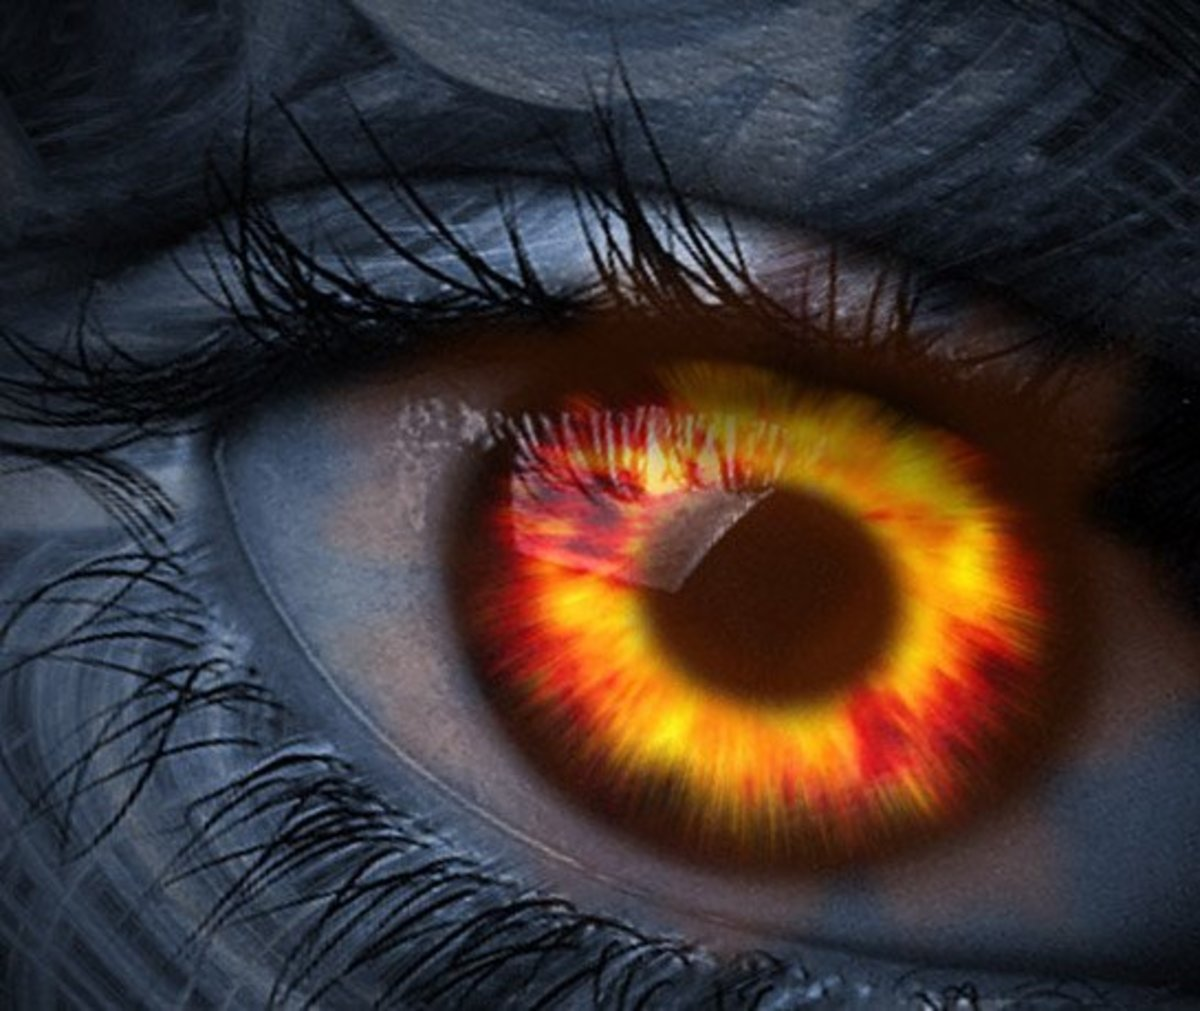 How To Remove the Evil Eye - What Is the Evil Eye?